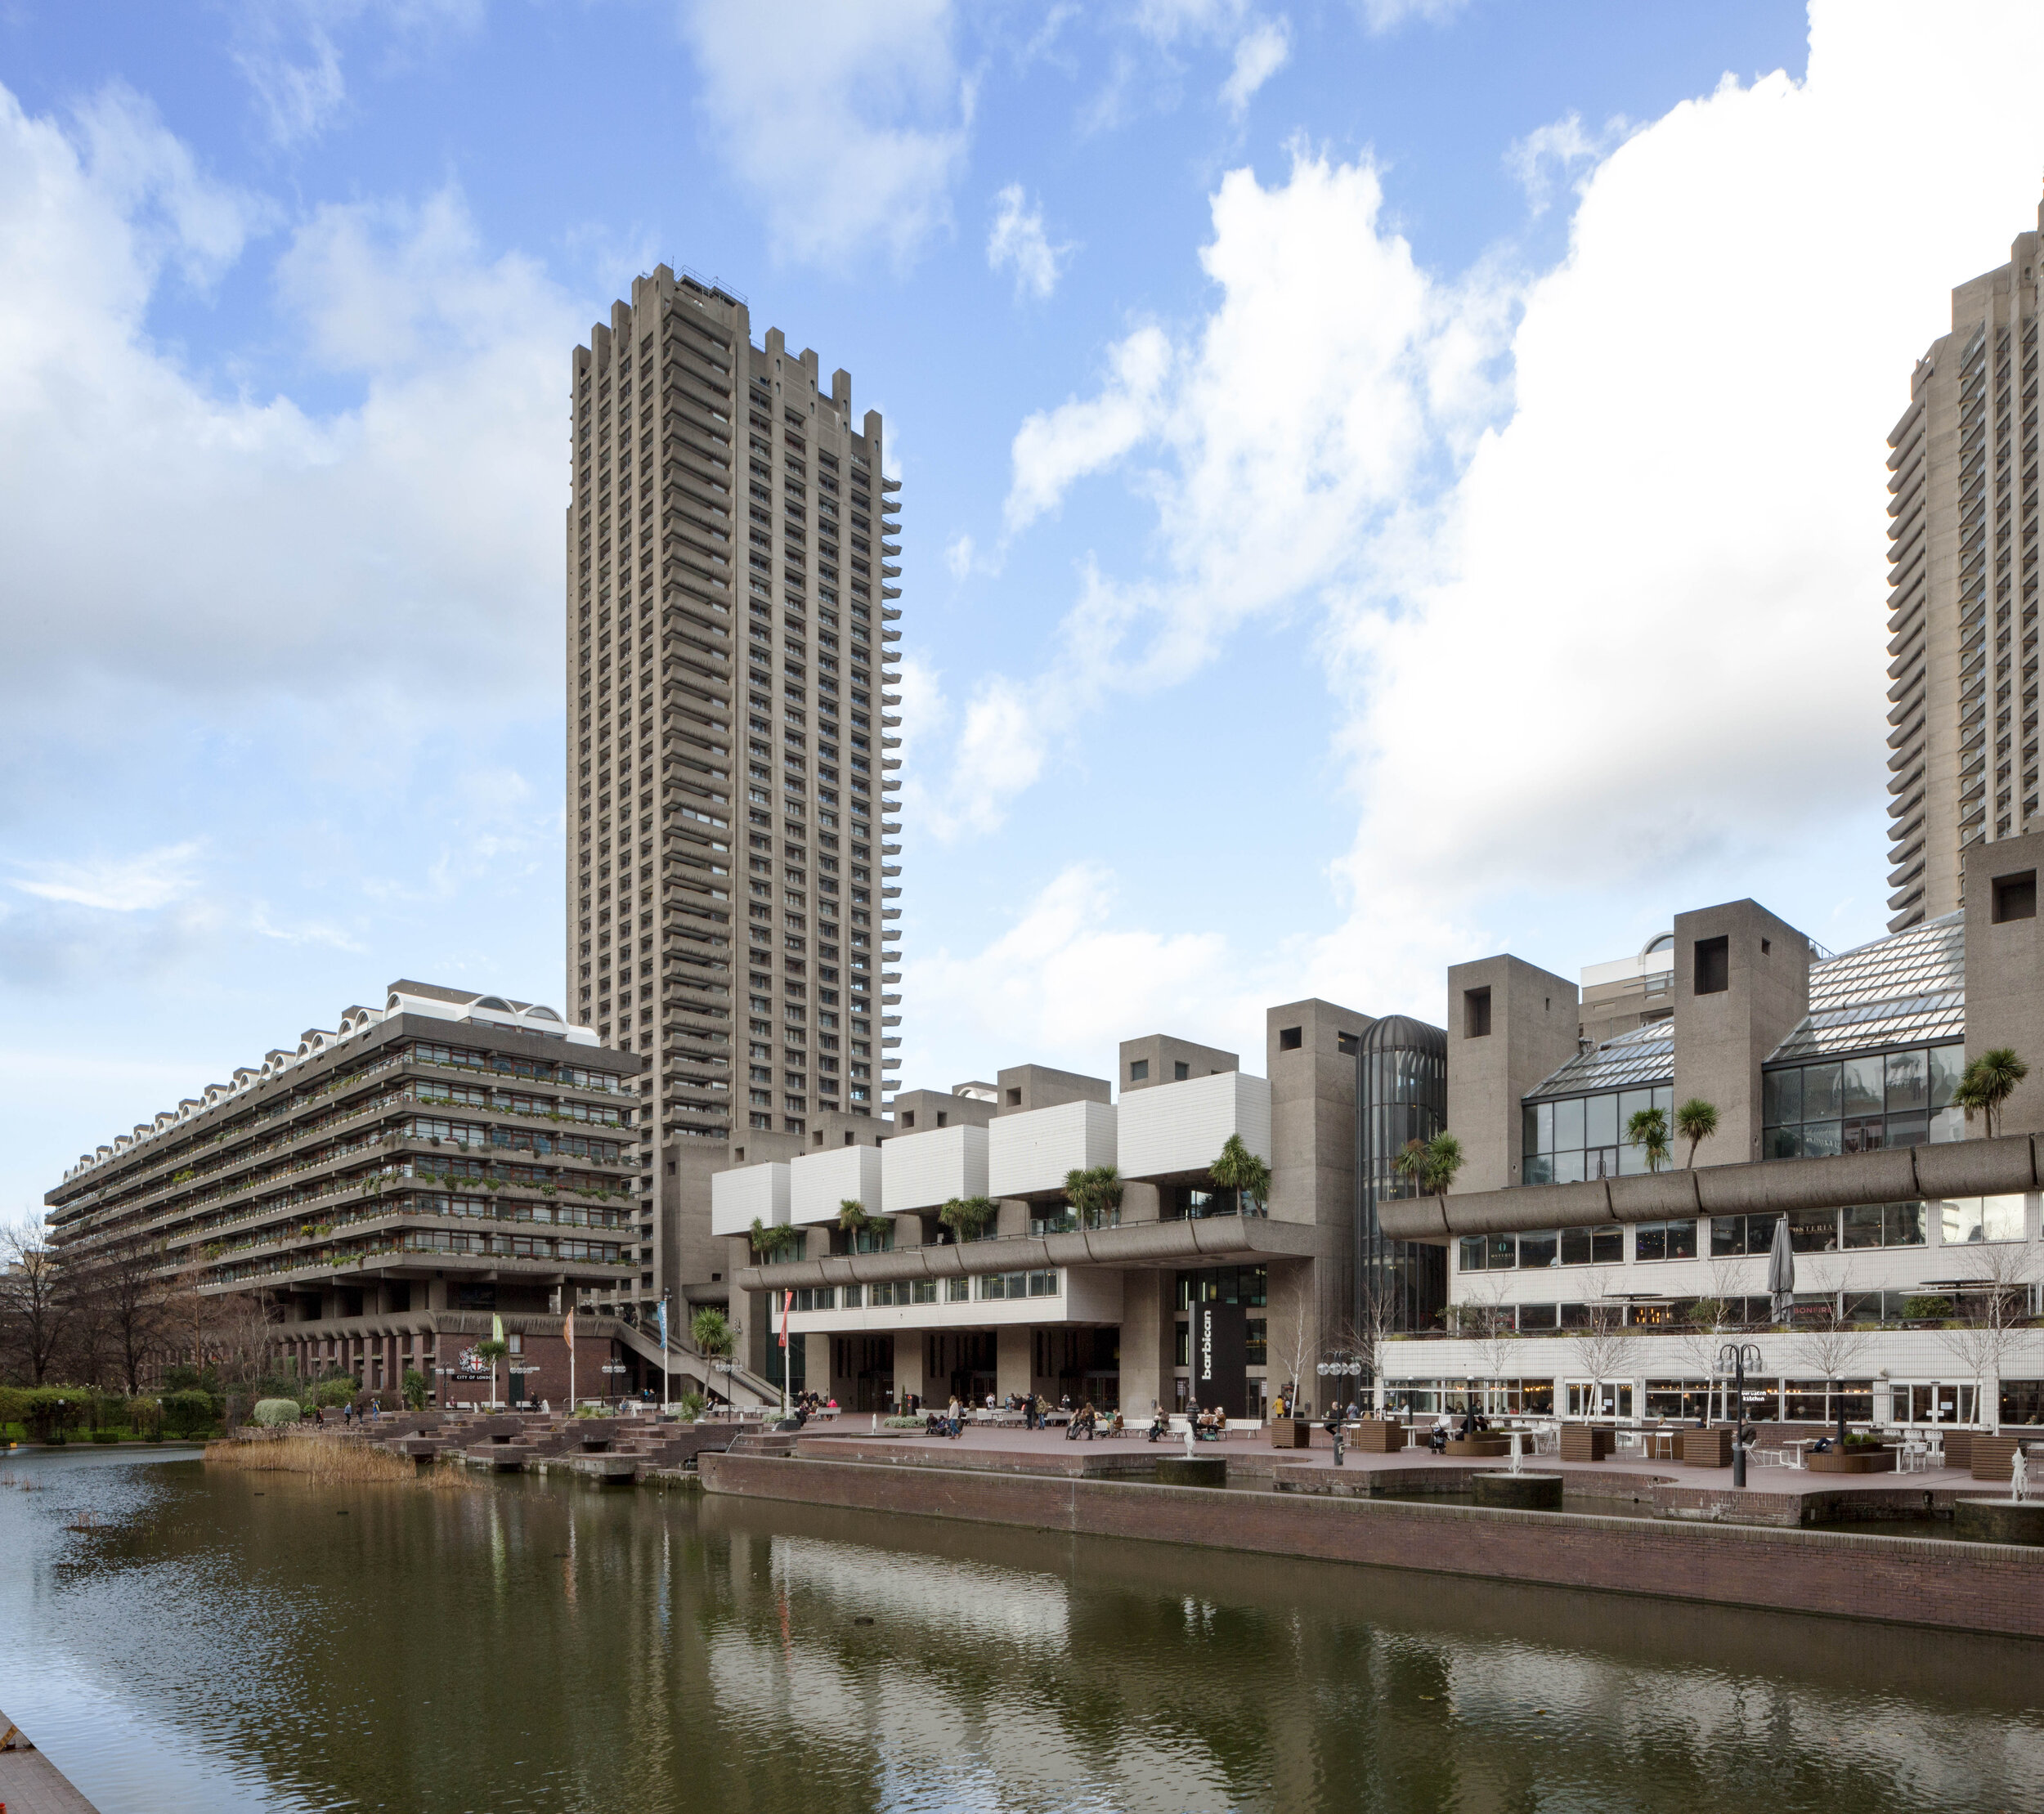 The Barbican Center 180125 317.jpg